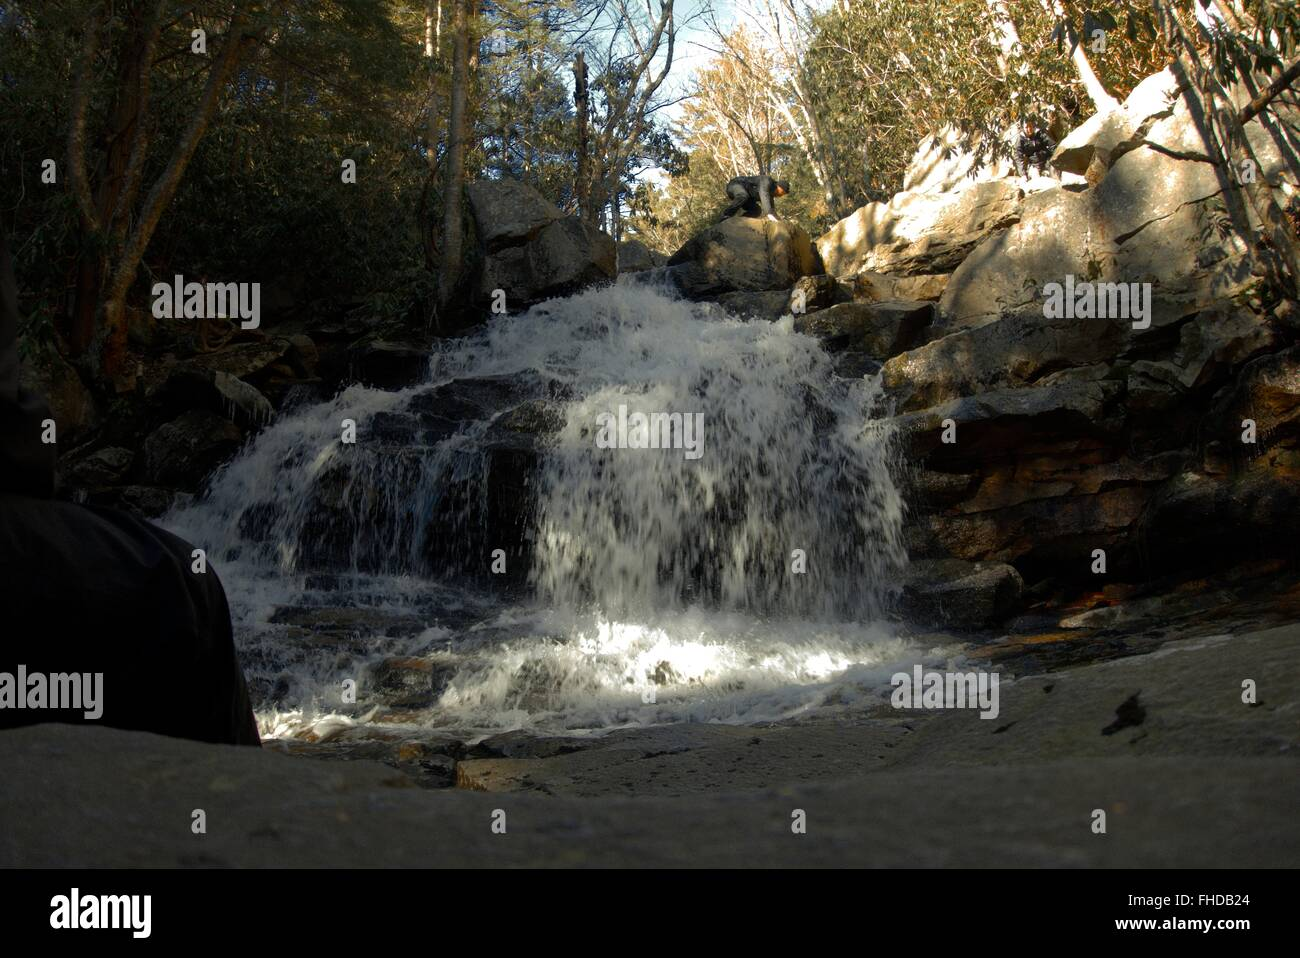 A waterfall in Dolly Sods Wilderness, Monongahela National Forest - Stock Image